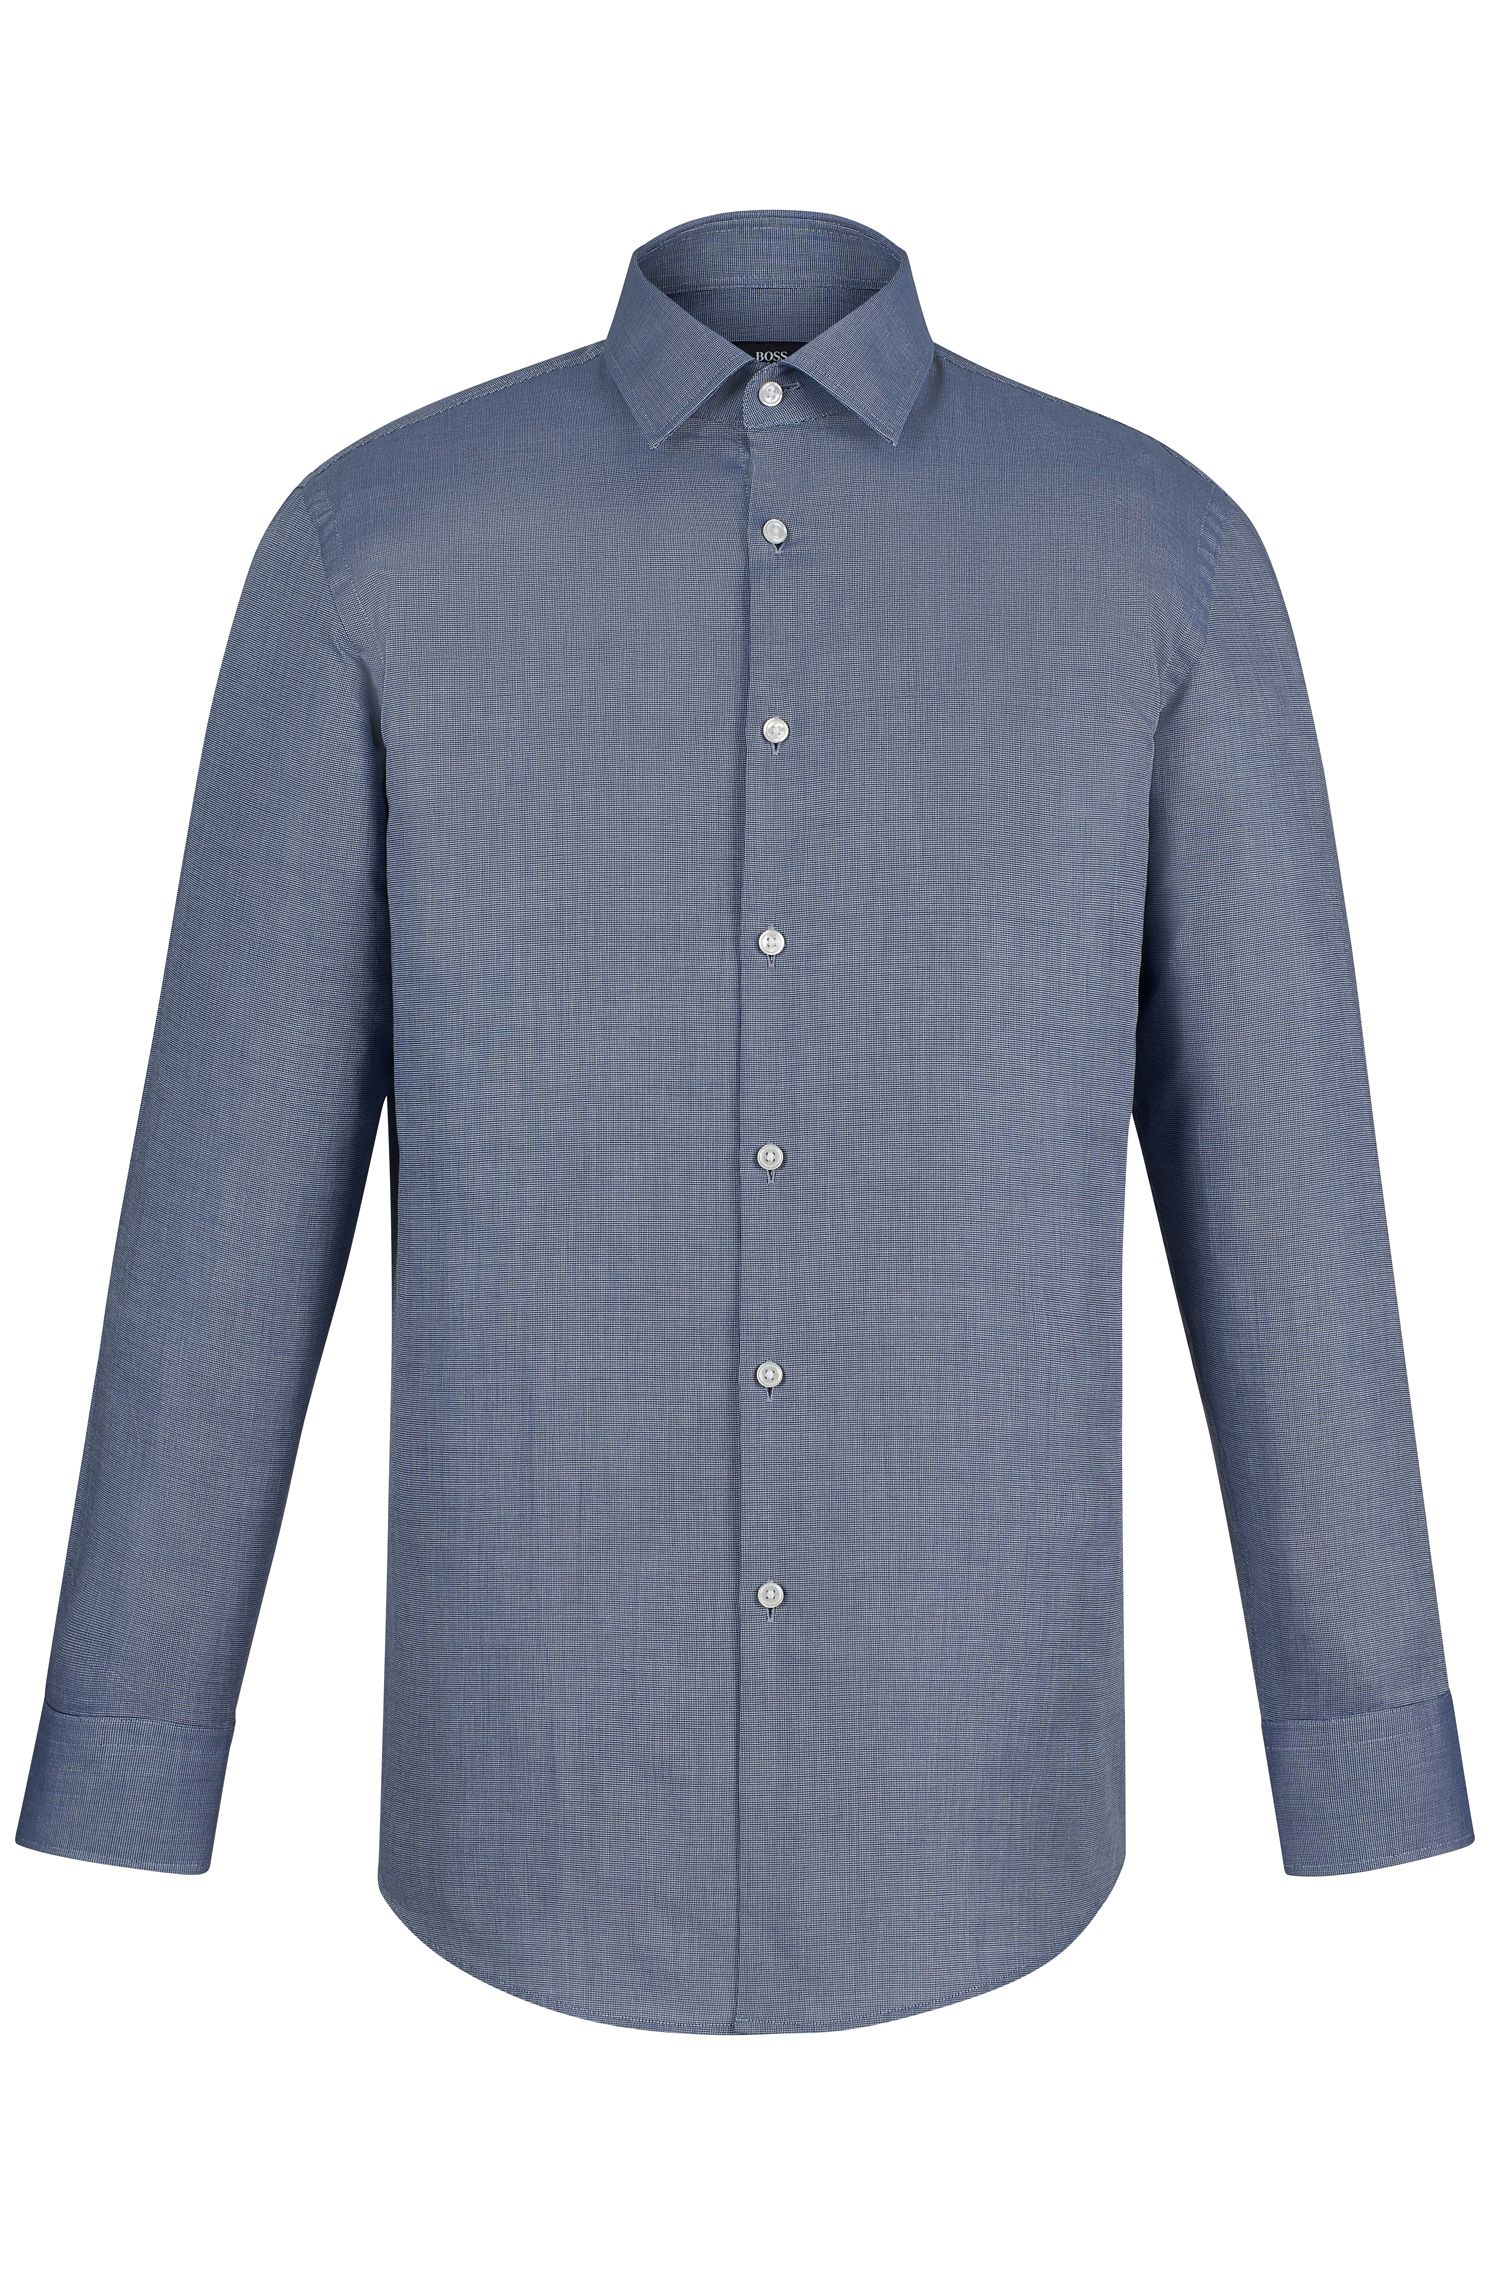 Nailhead Cotton Dress Shirt, Sharp Fit | Marley US